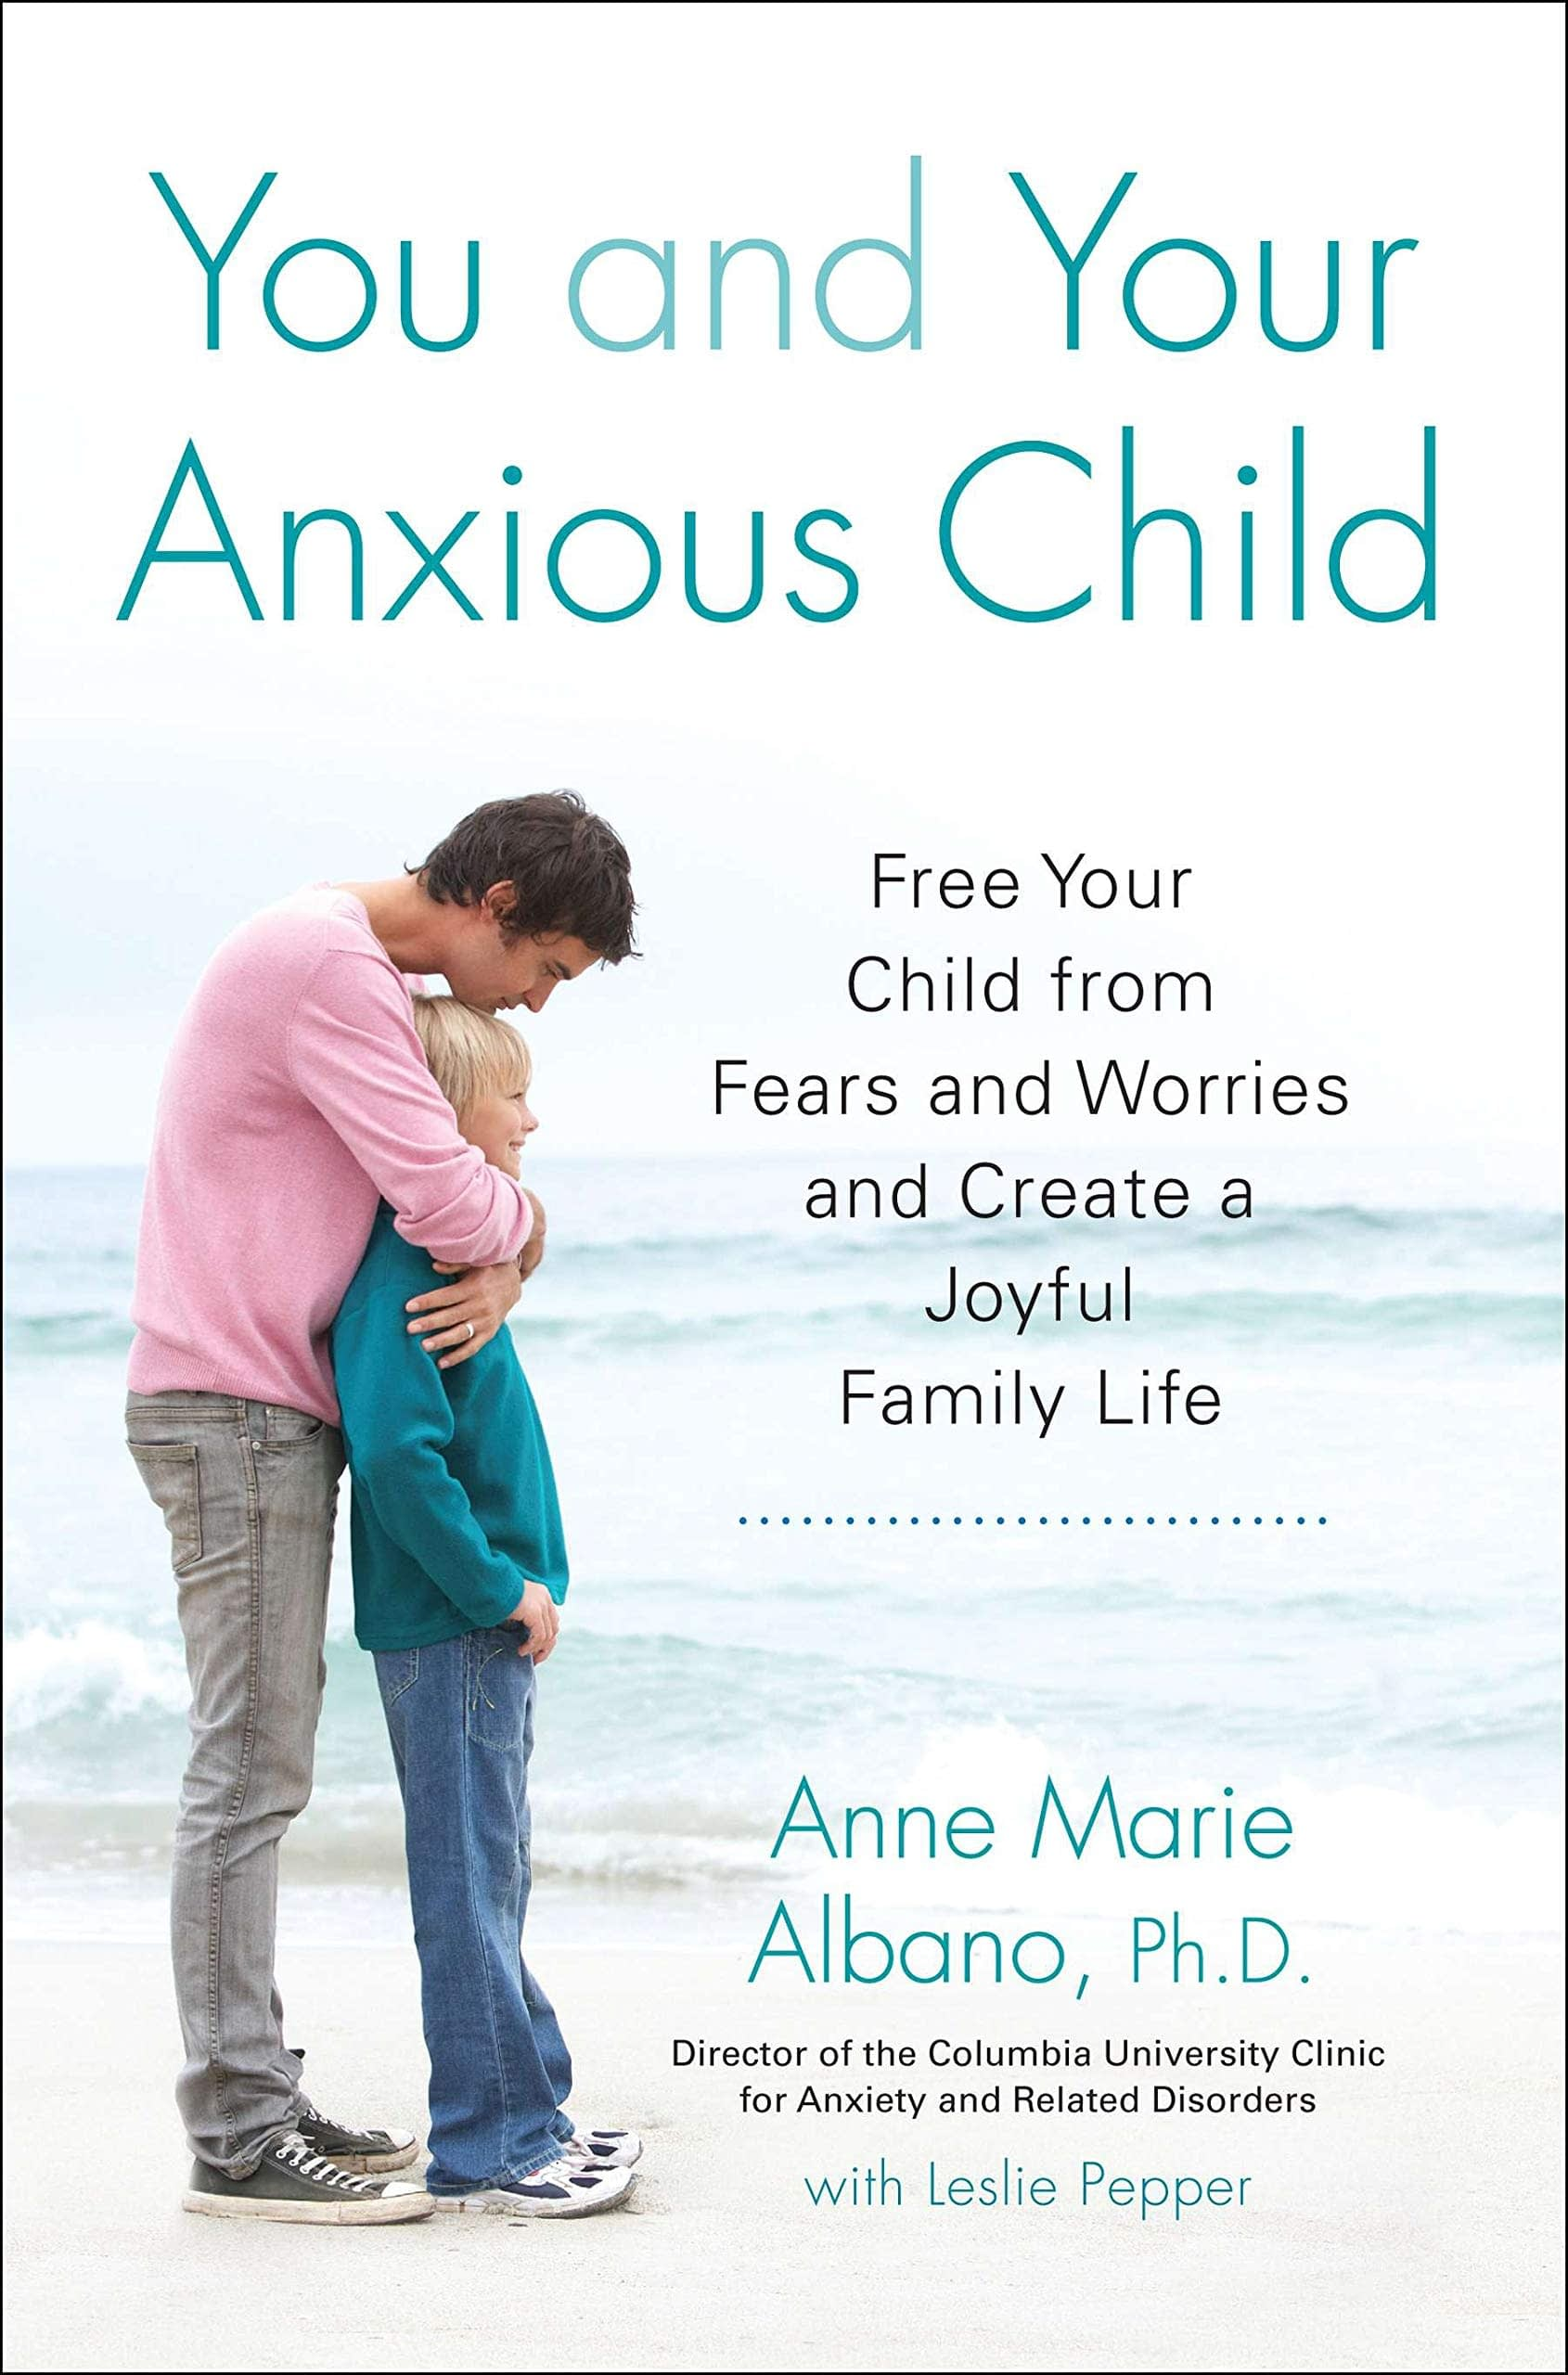 Book cover for You and Your Anxious Child - Free Your Child from Fears and Worries and Create a Joyful Family Life